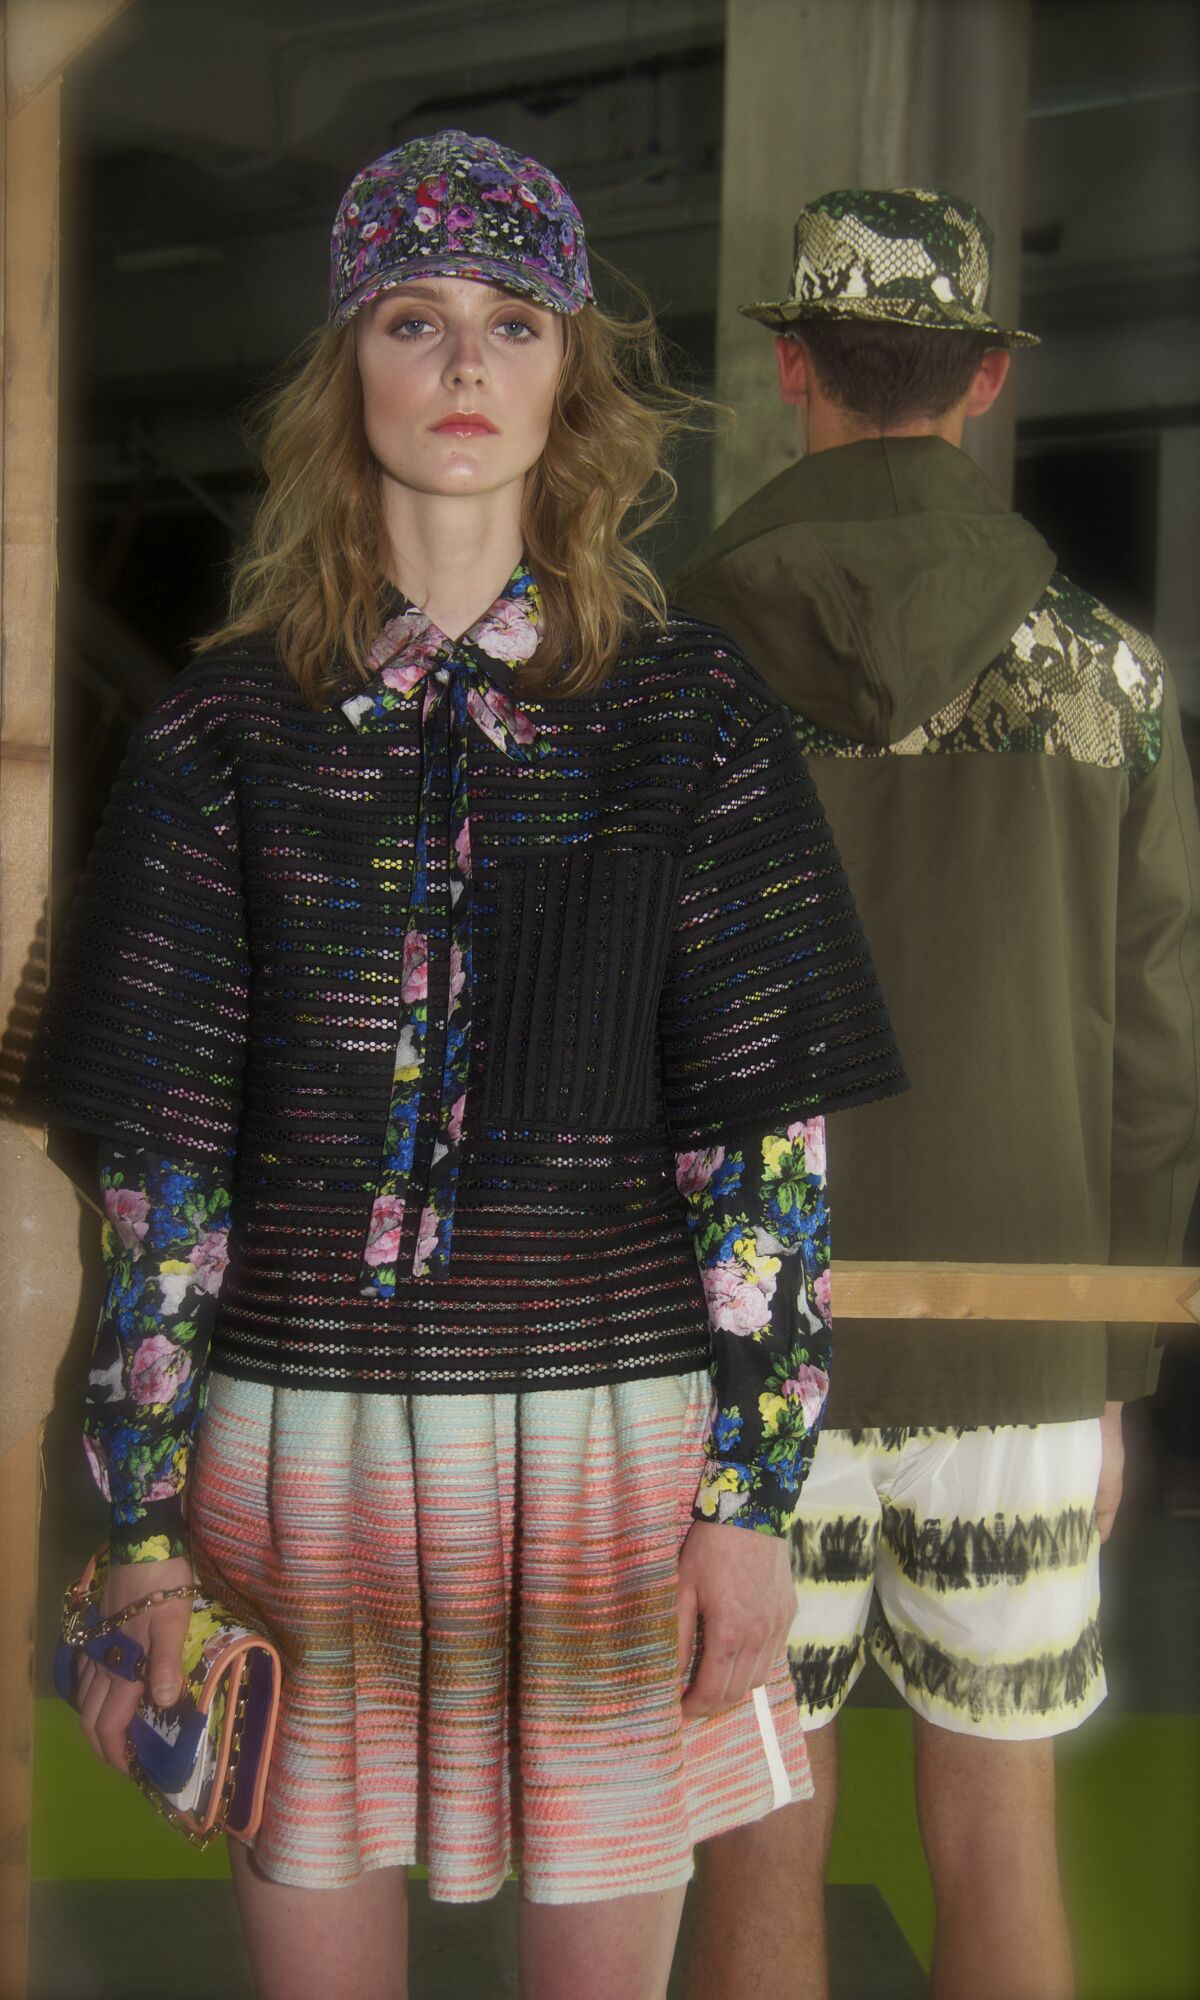 Msgm Spring Summer 2014 Women's Collection Pitti Immagine Uomo